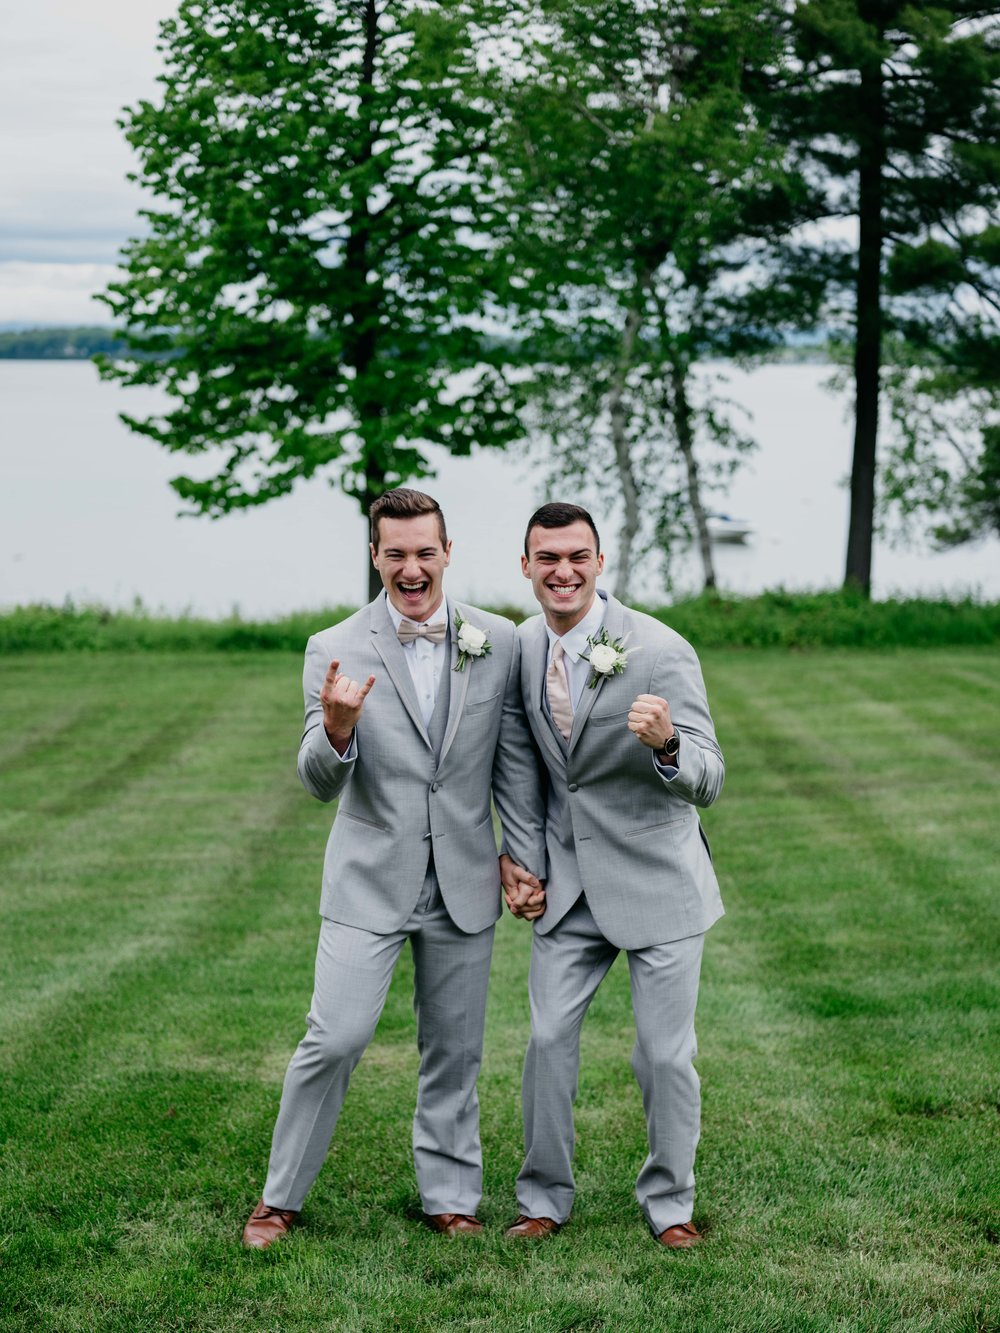 06032017-nick-evan-vermont-mountain-wedding-photographer-35.jpg